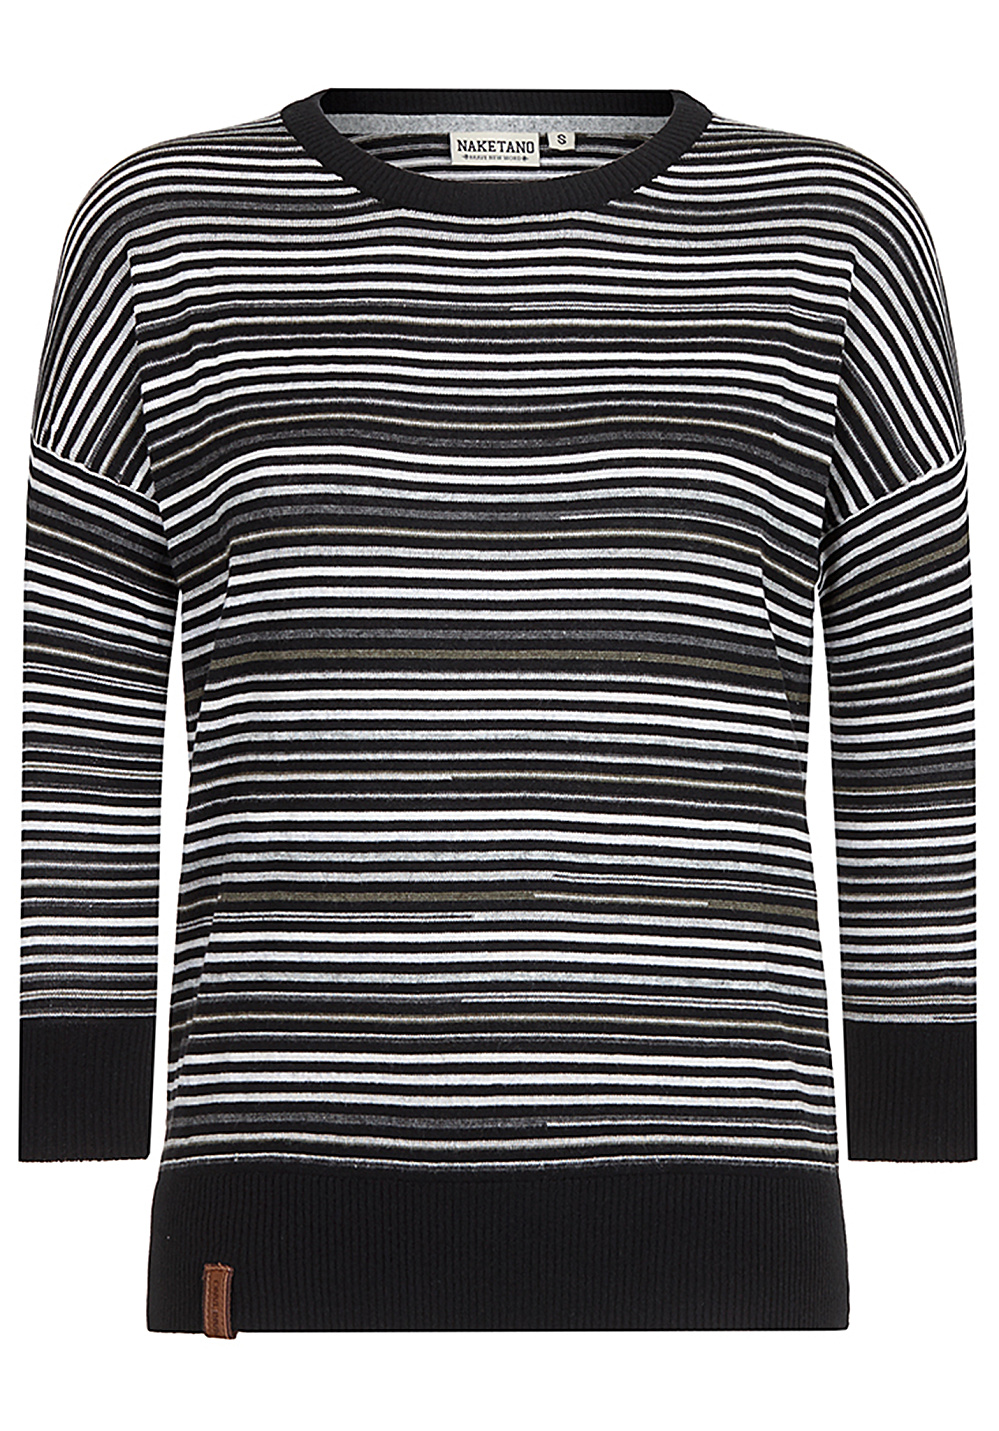 NAKETANO Streets Of South Jamaica Knitted Pullover for Women Black